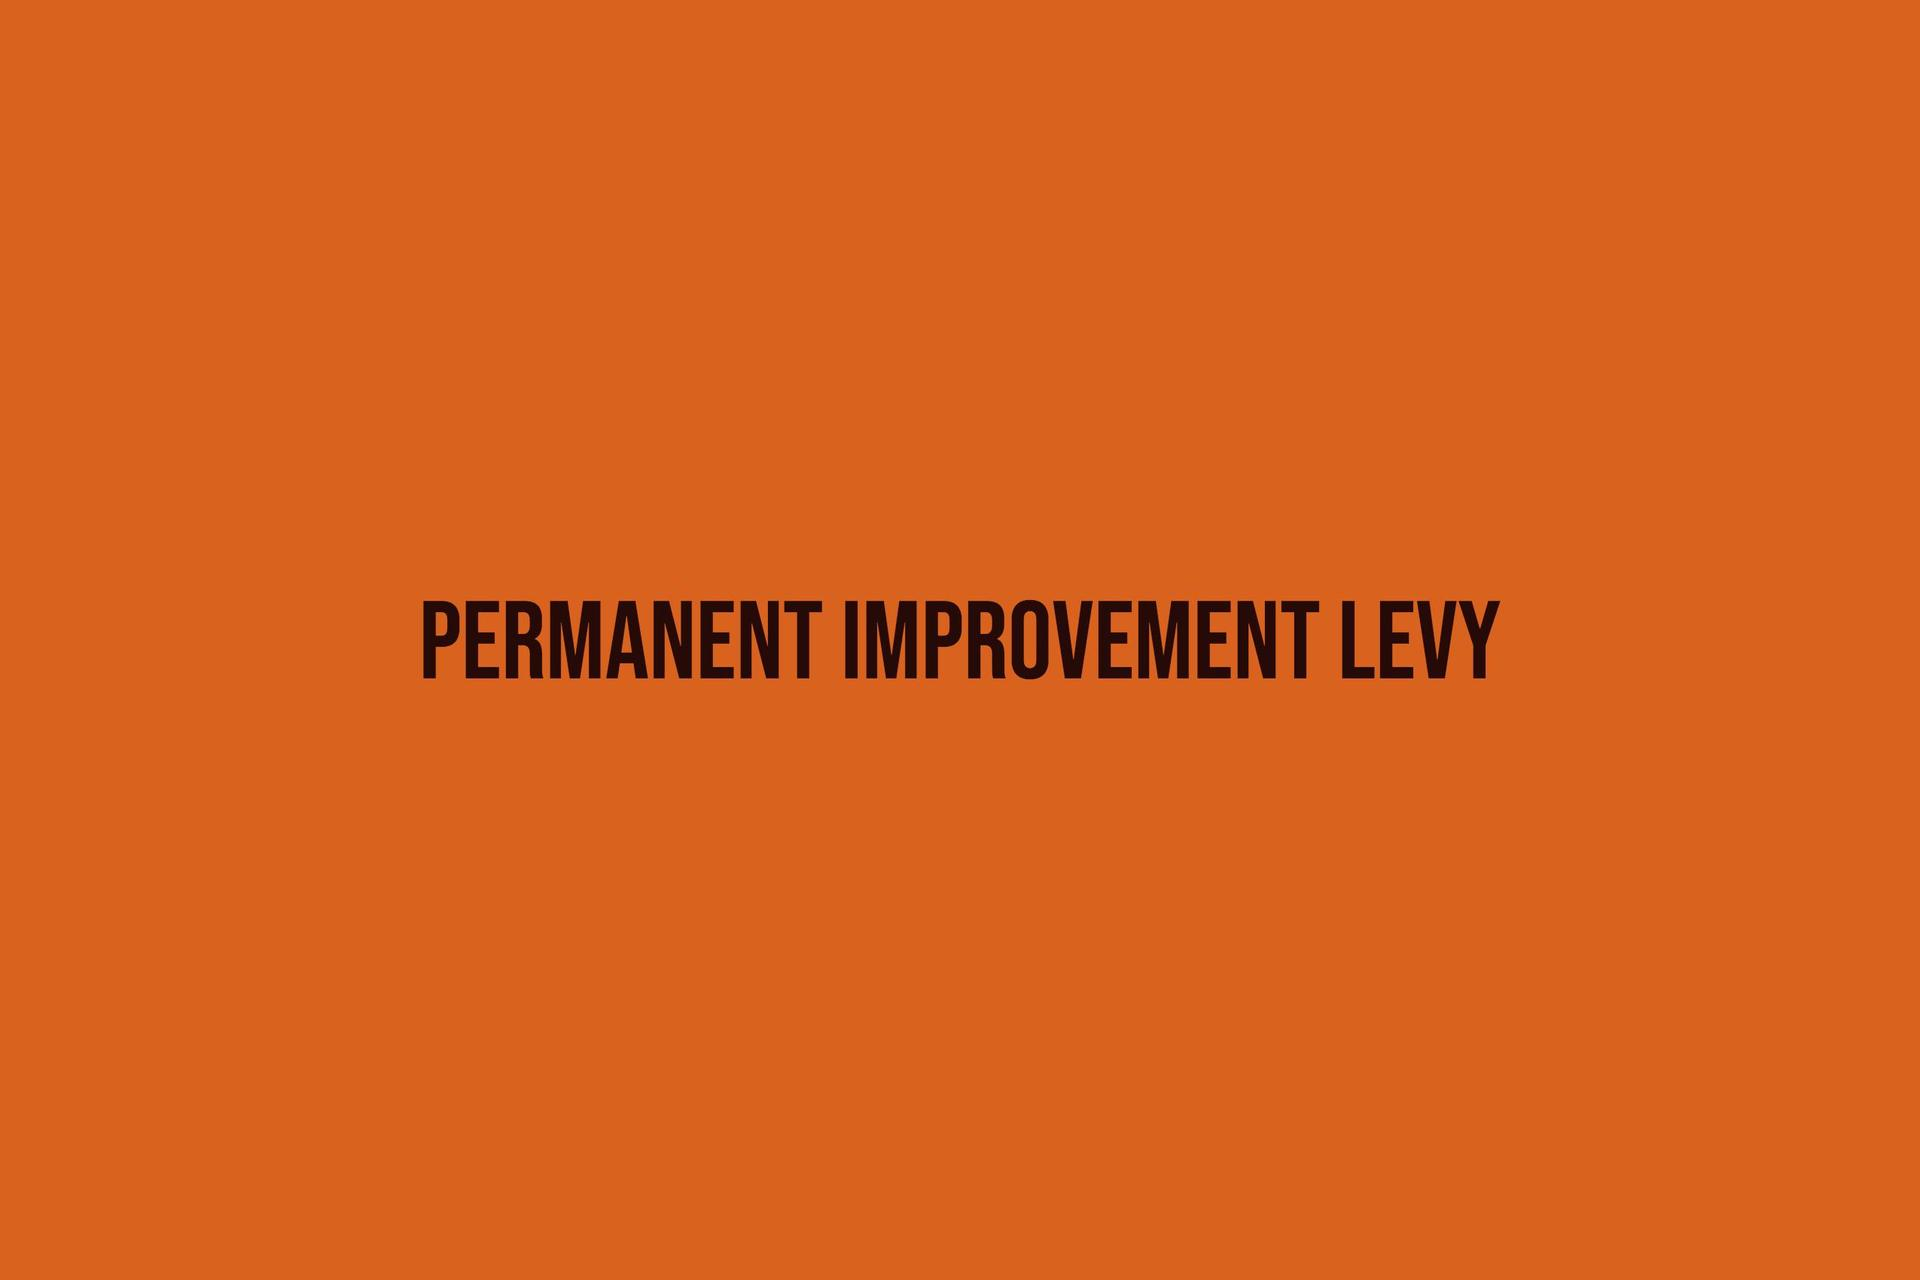 Permanent Improvement